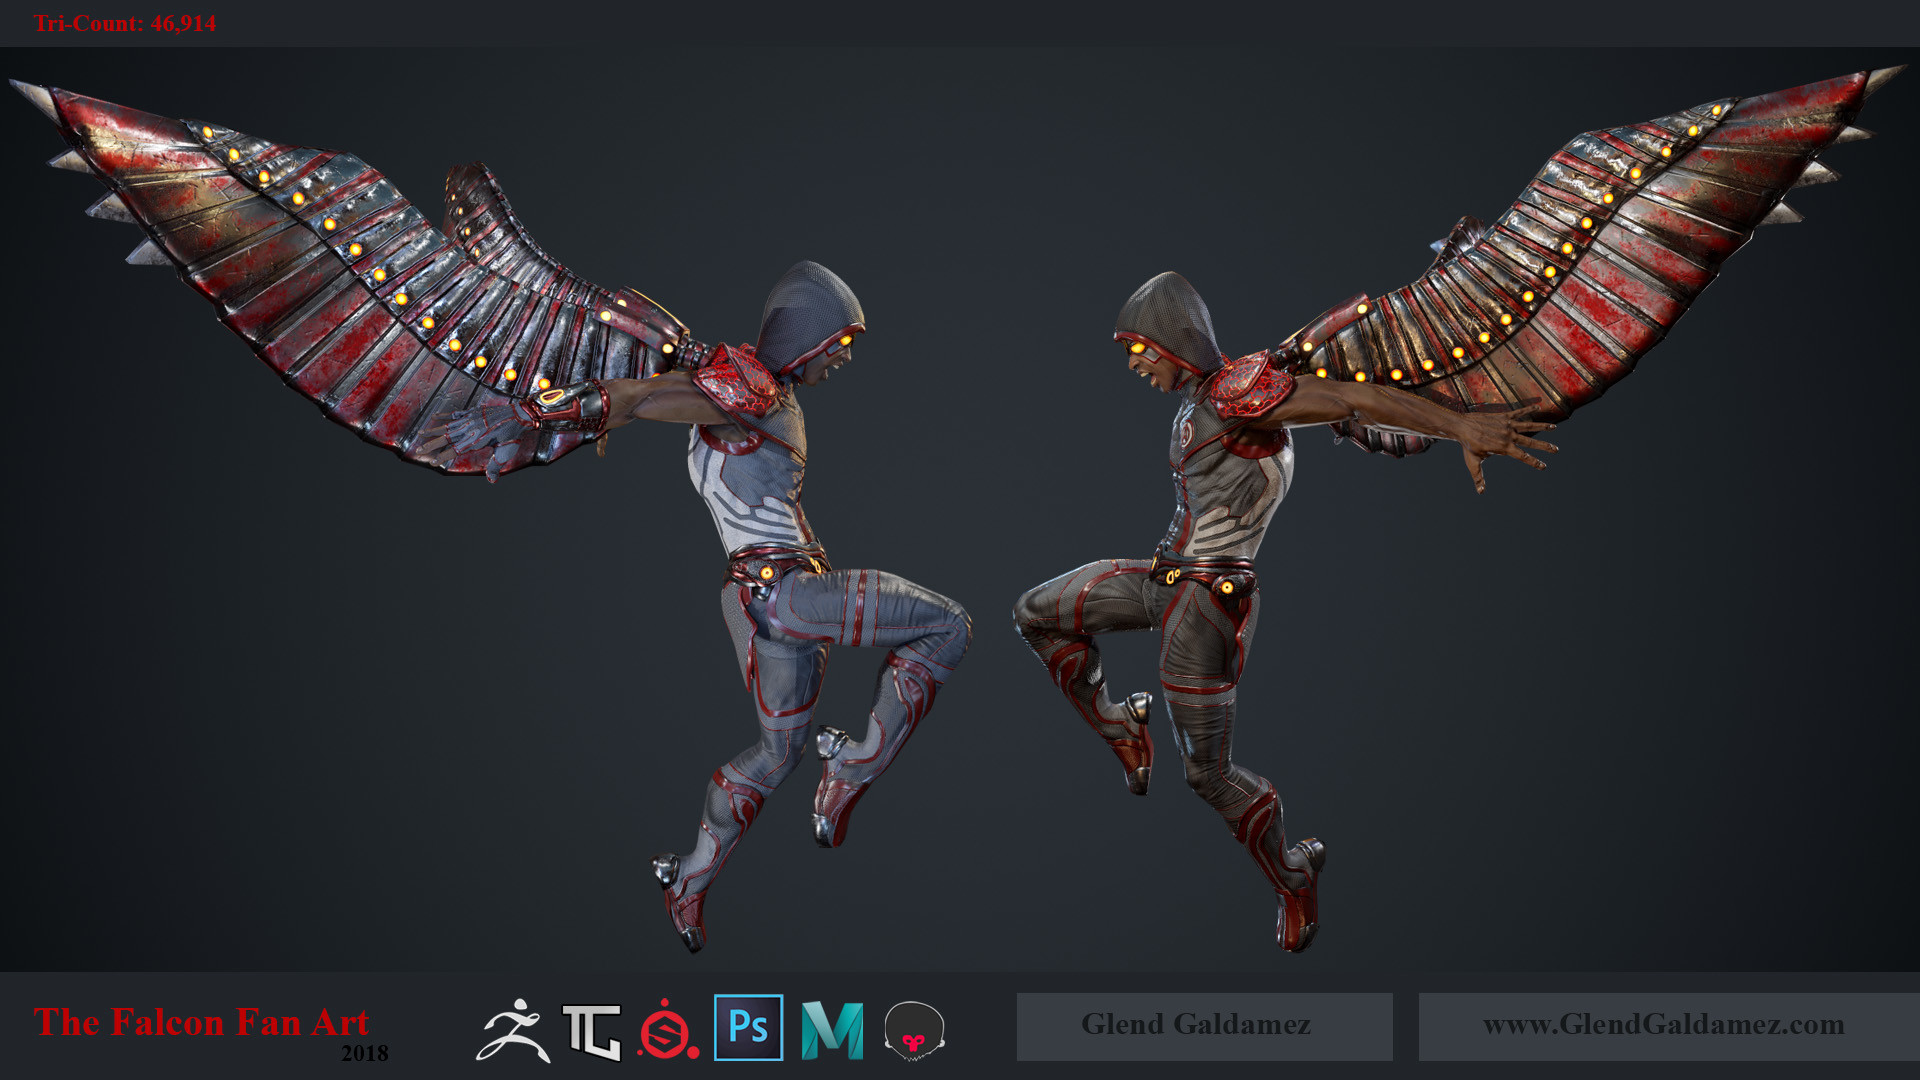 ArtStation - The Falcon (Fan Art) - Game Ready Character Model